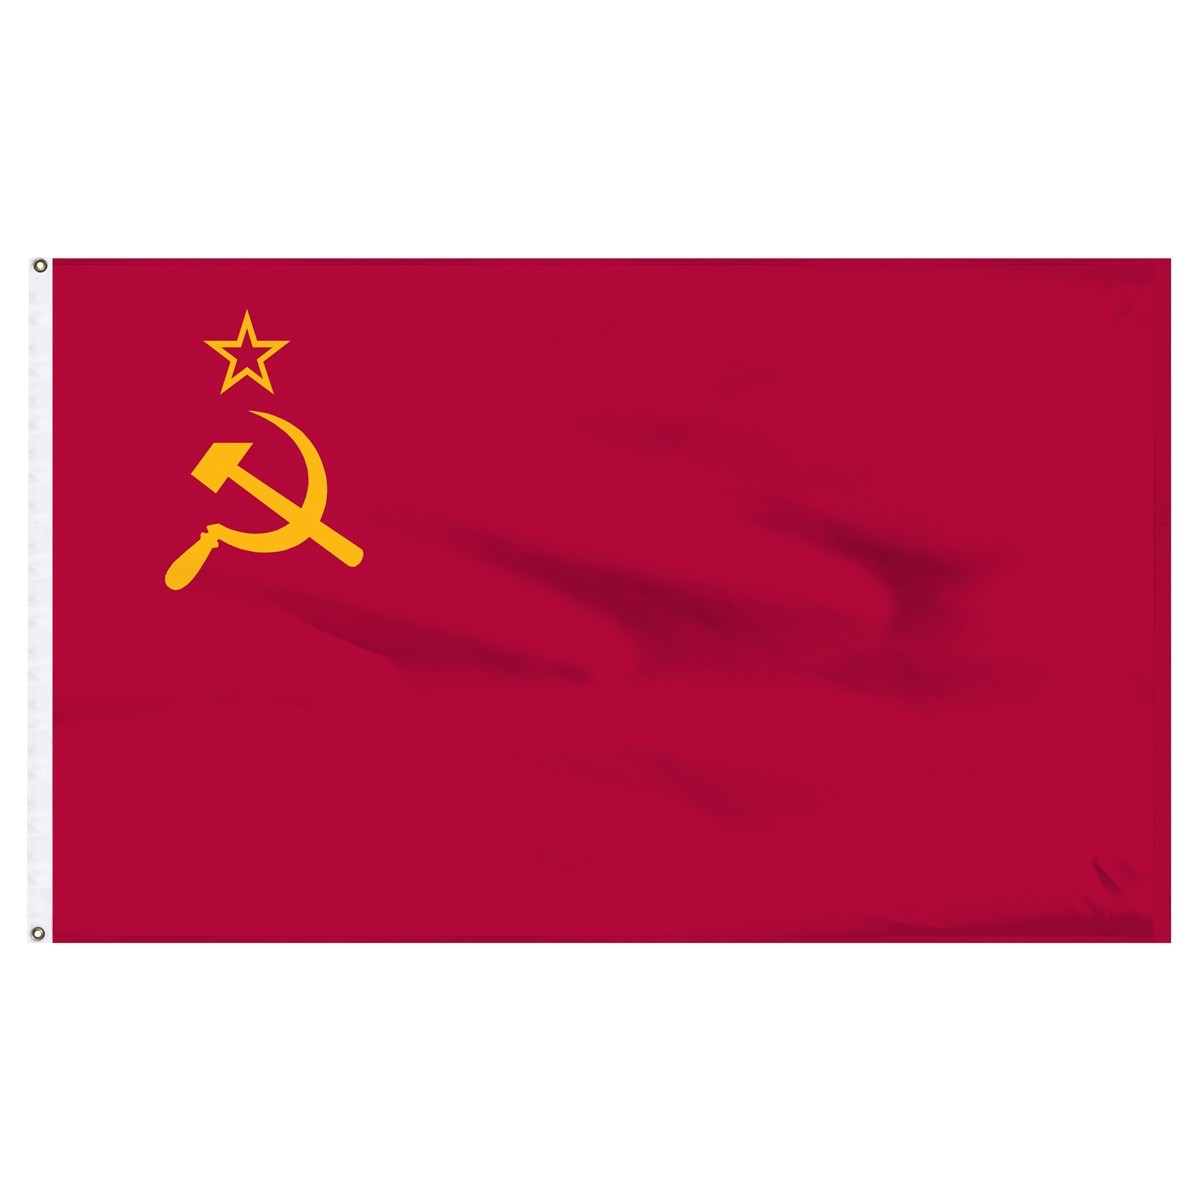 USSR 5' x 8' Outdoor Nylon Flag